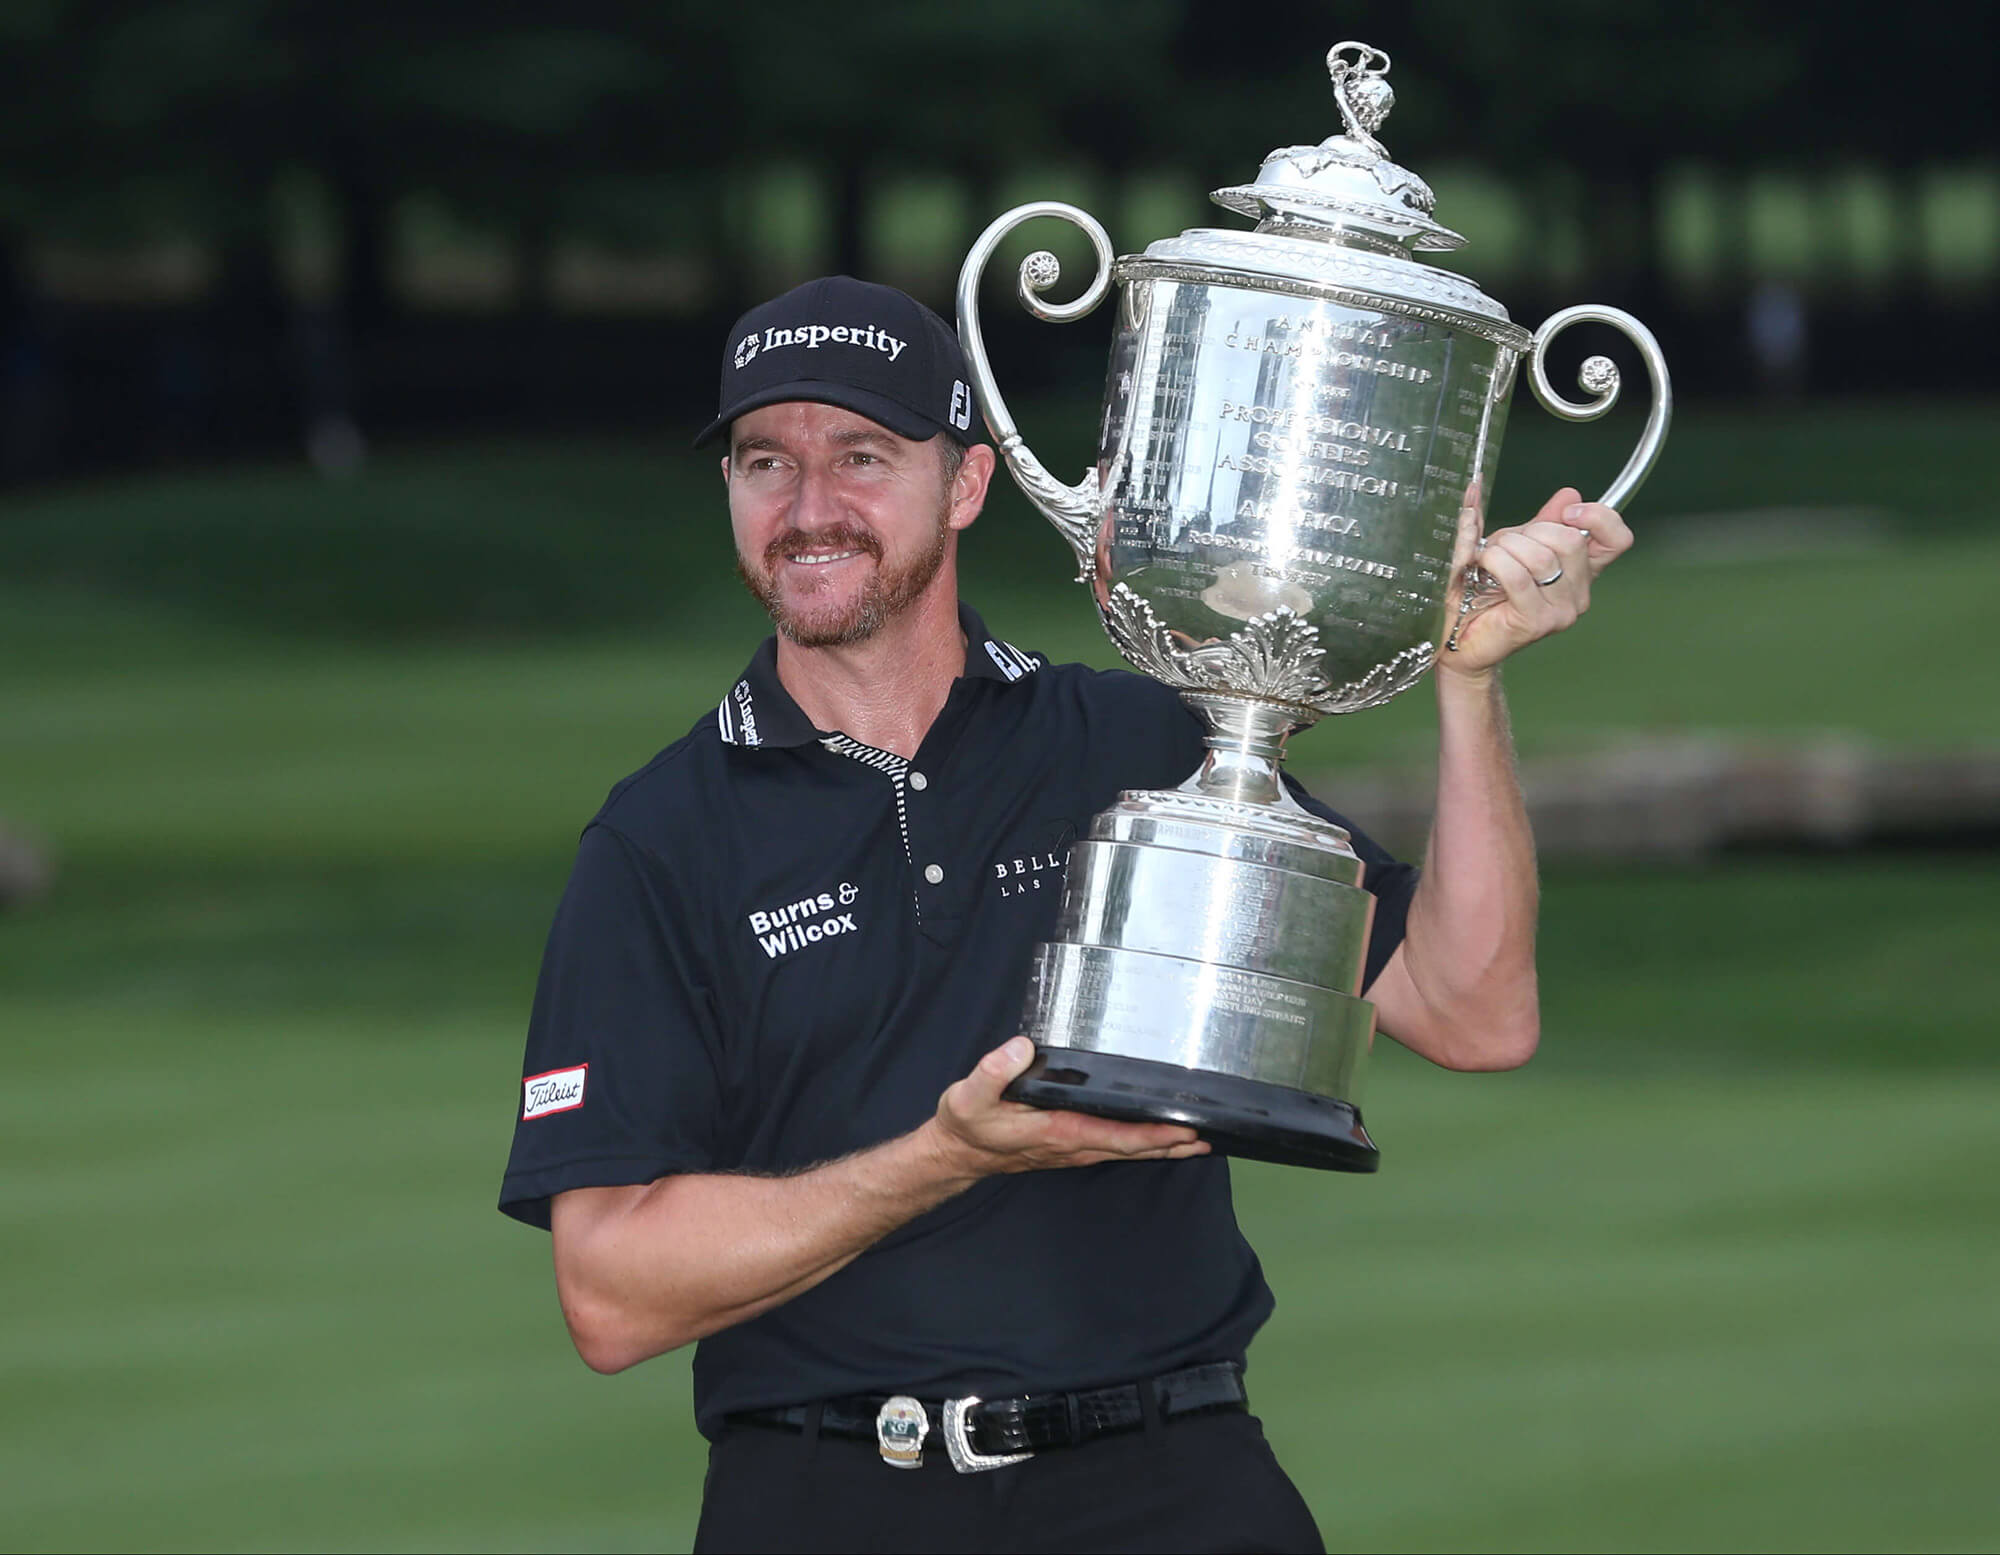 Image of Jimmy Walker with the trophy from PGA major.